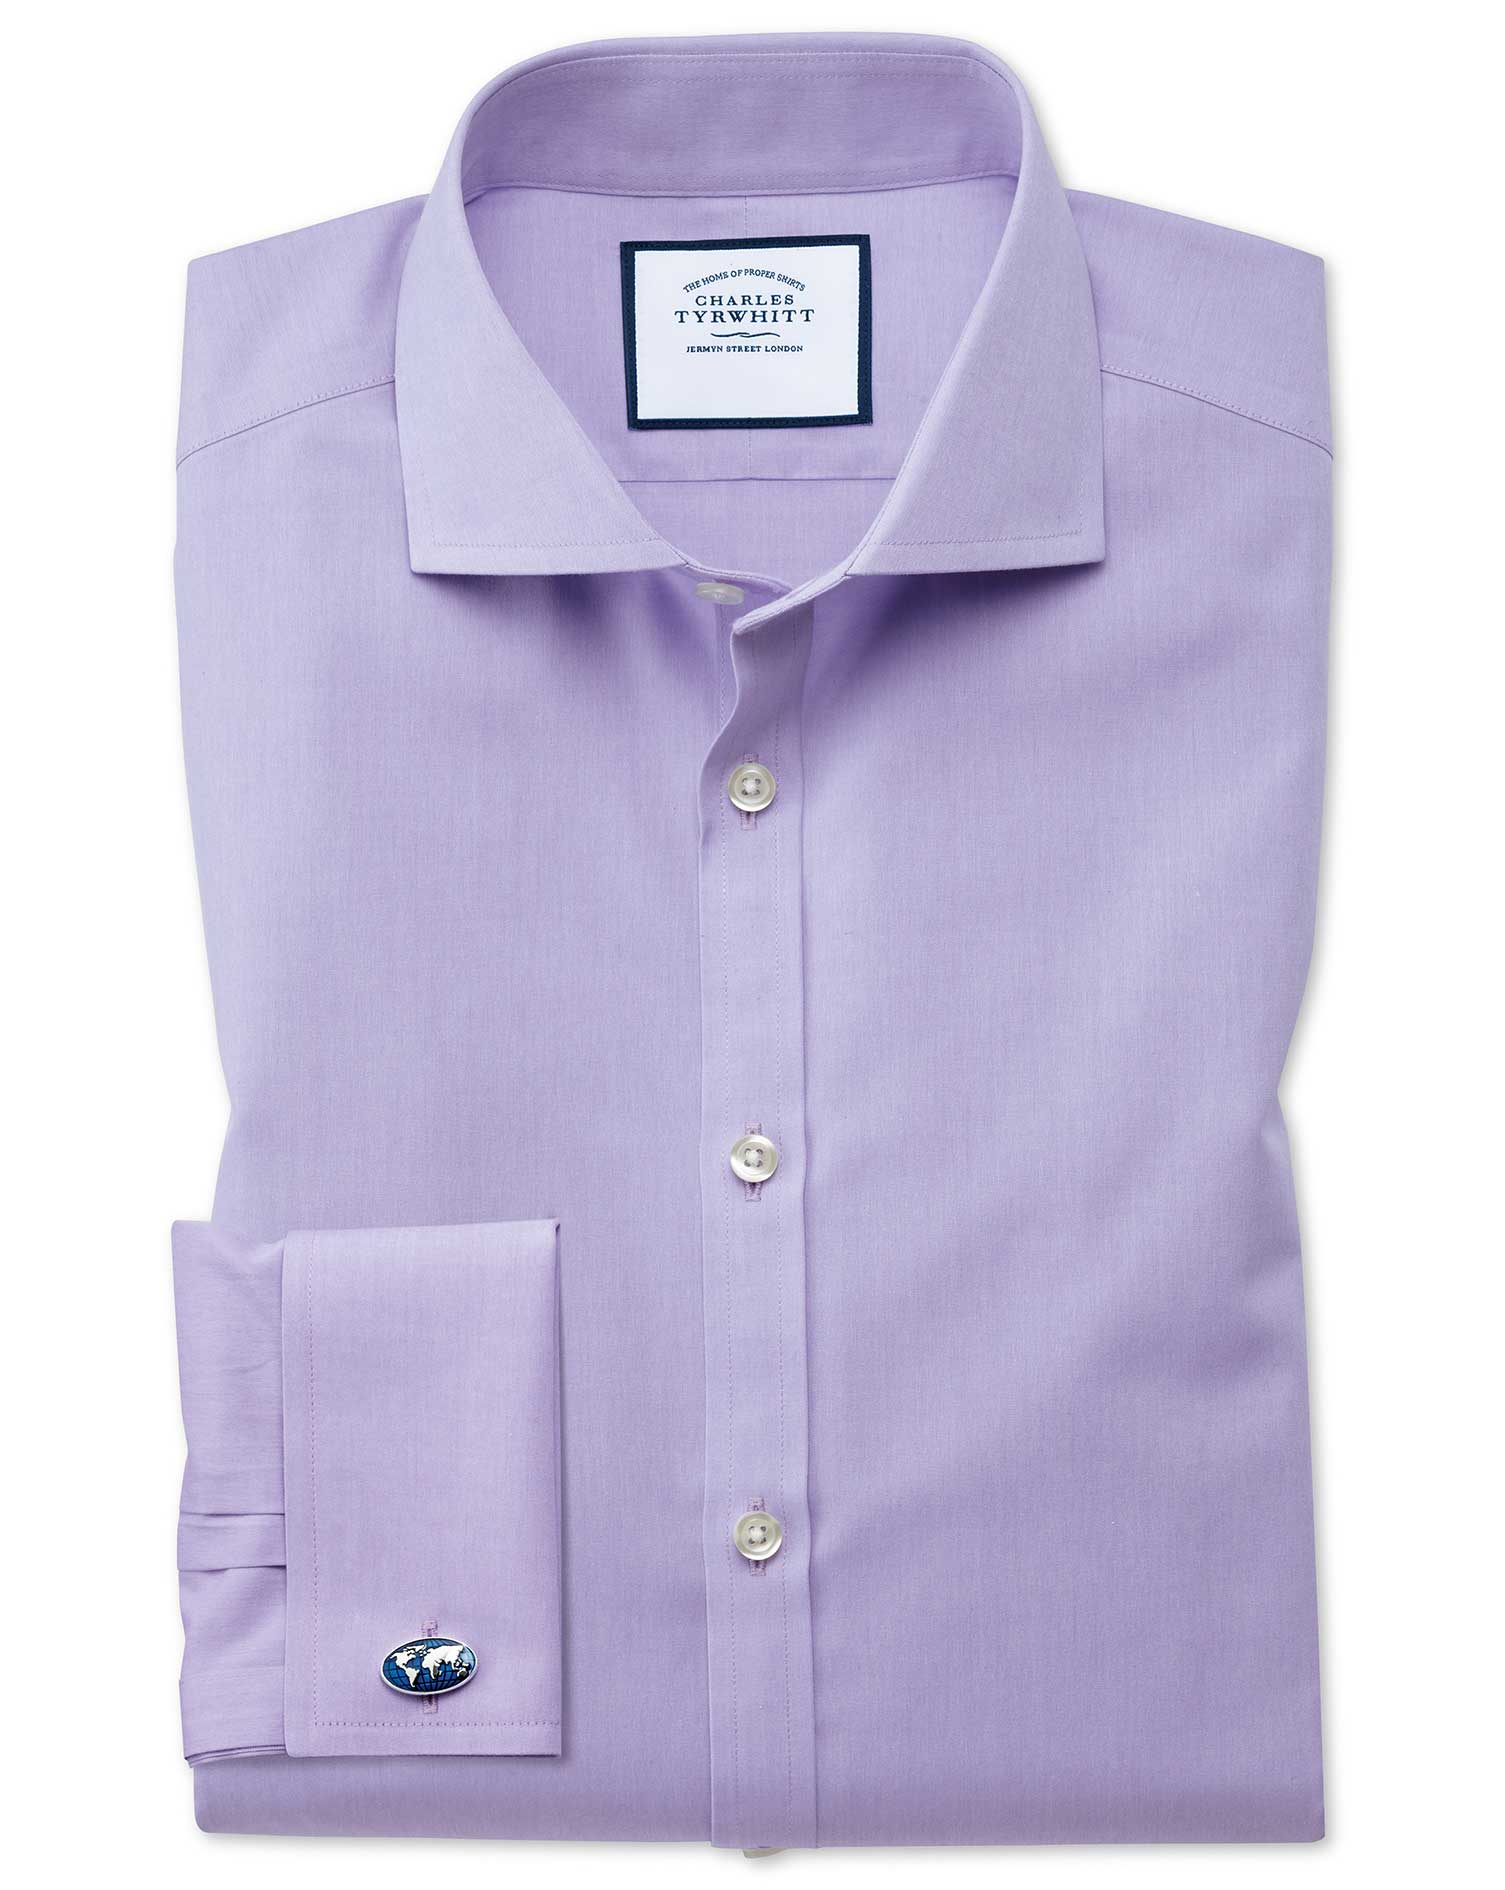 Extra Slim Fit Cutaway Non-Iron Poplin Lilac Cotton Formal Shirt Double Cuff Size 15.5/35 by Charles